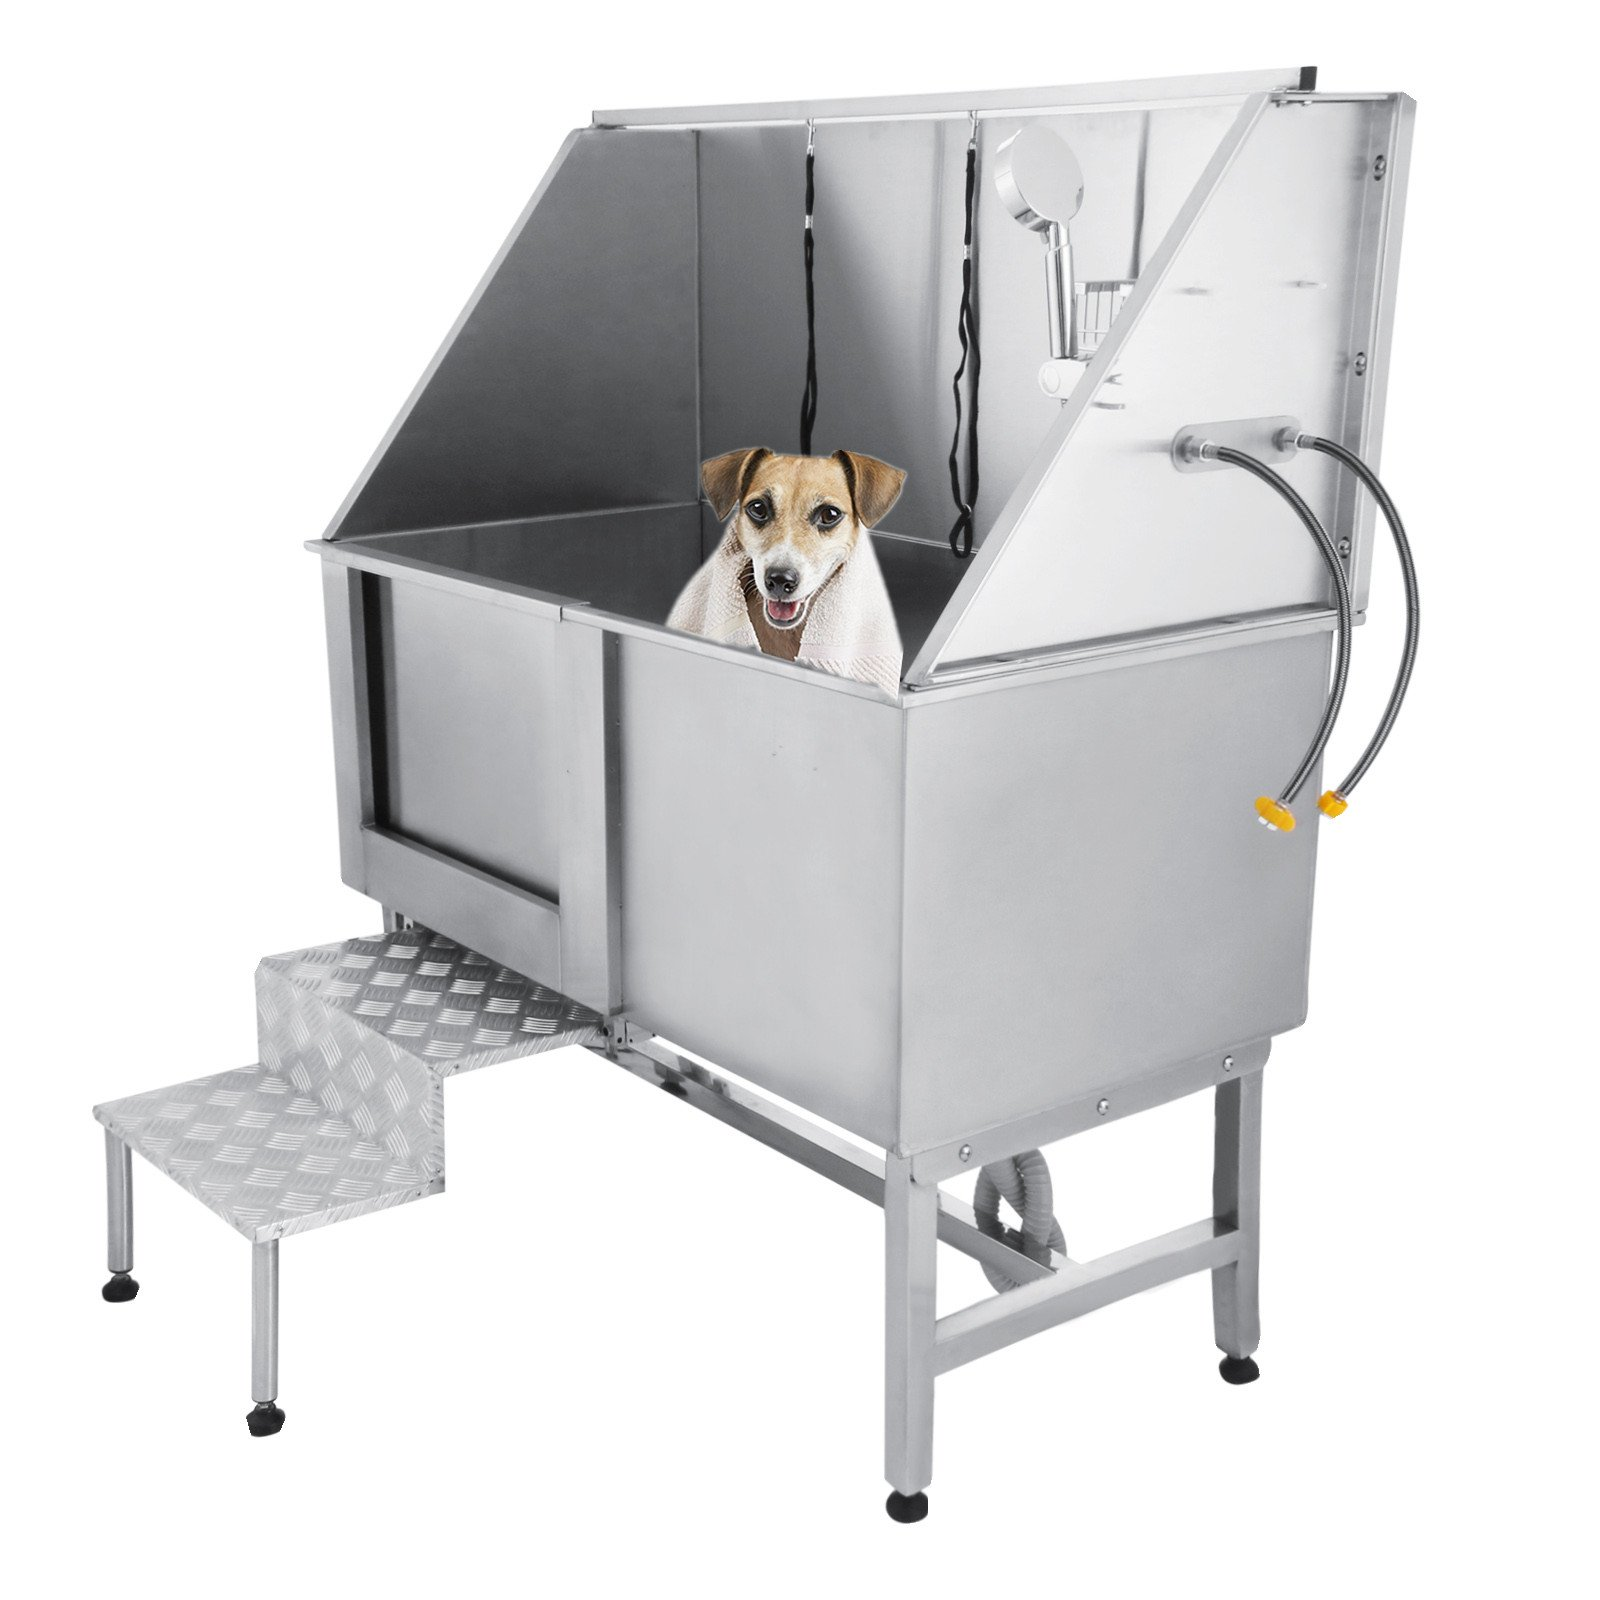 BestEquip 50 Inch Professional Dog Grooming Tub Stainless Steel Pet Tub with Walk-in Ramp Dog Bath Tub for Pet Dogs (50'')